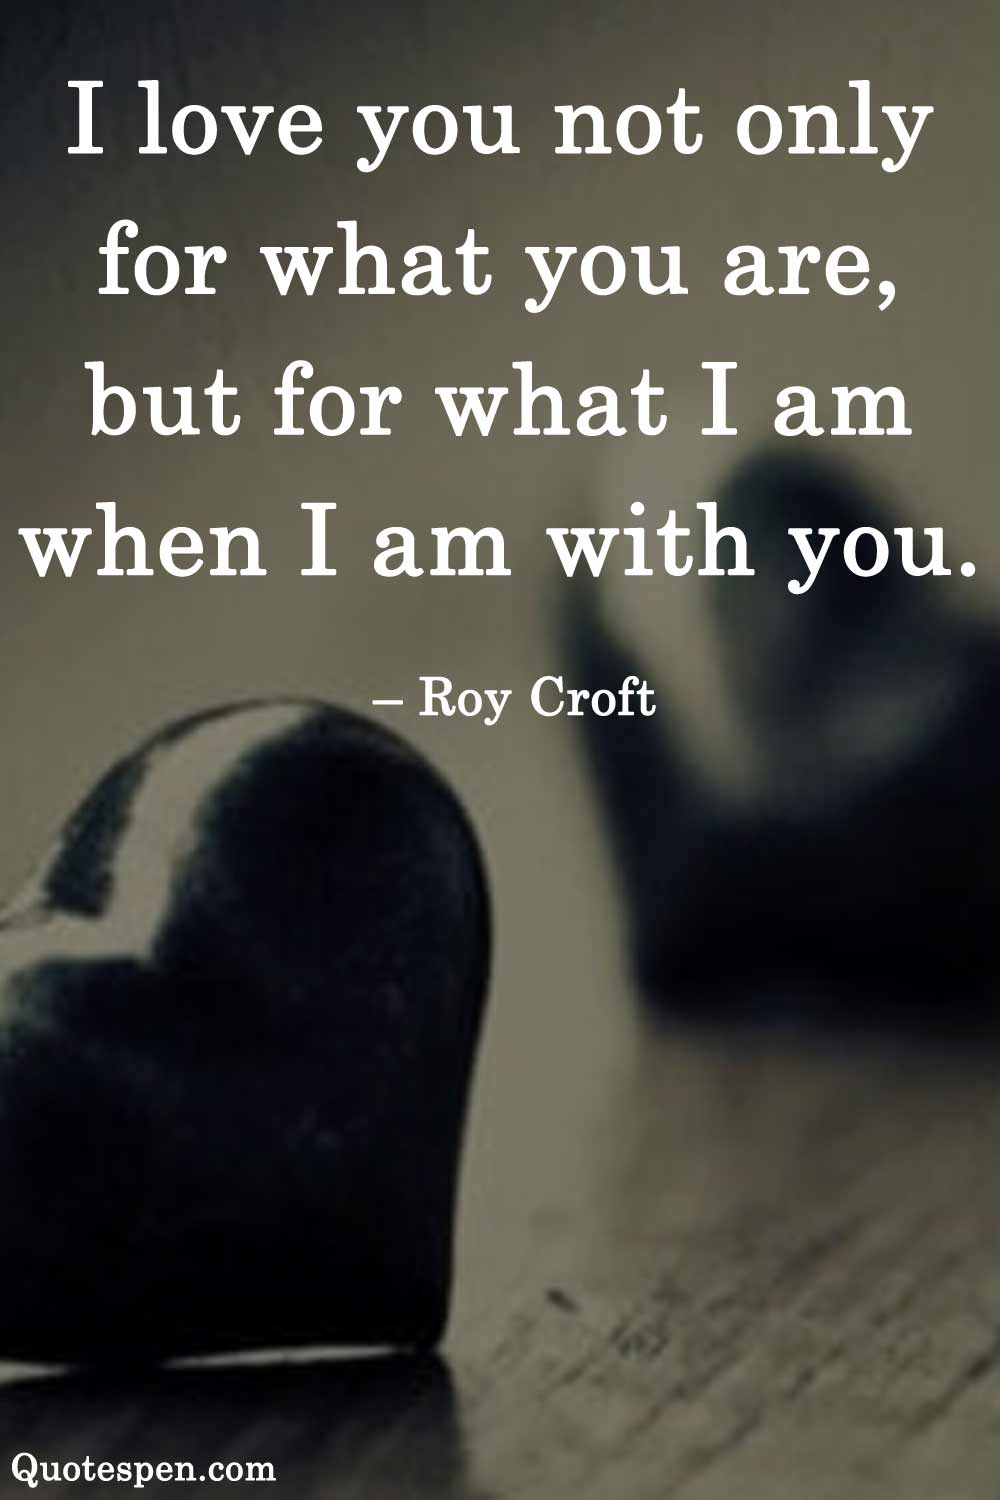 Love quotes for him to make him feel special